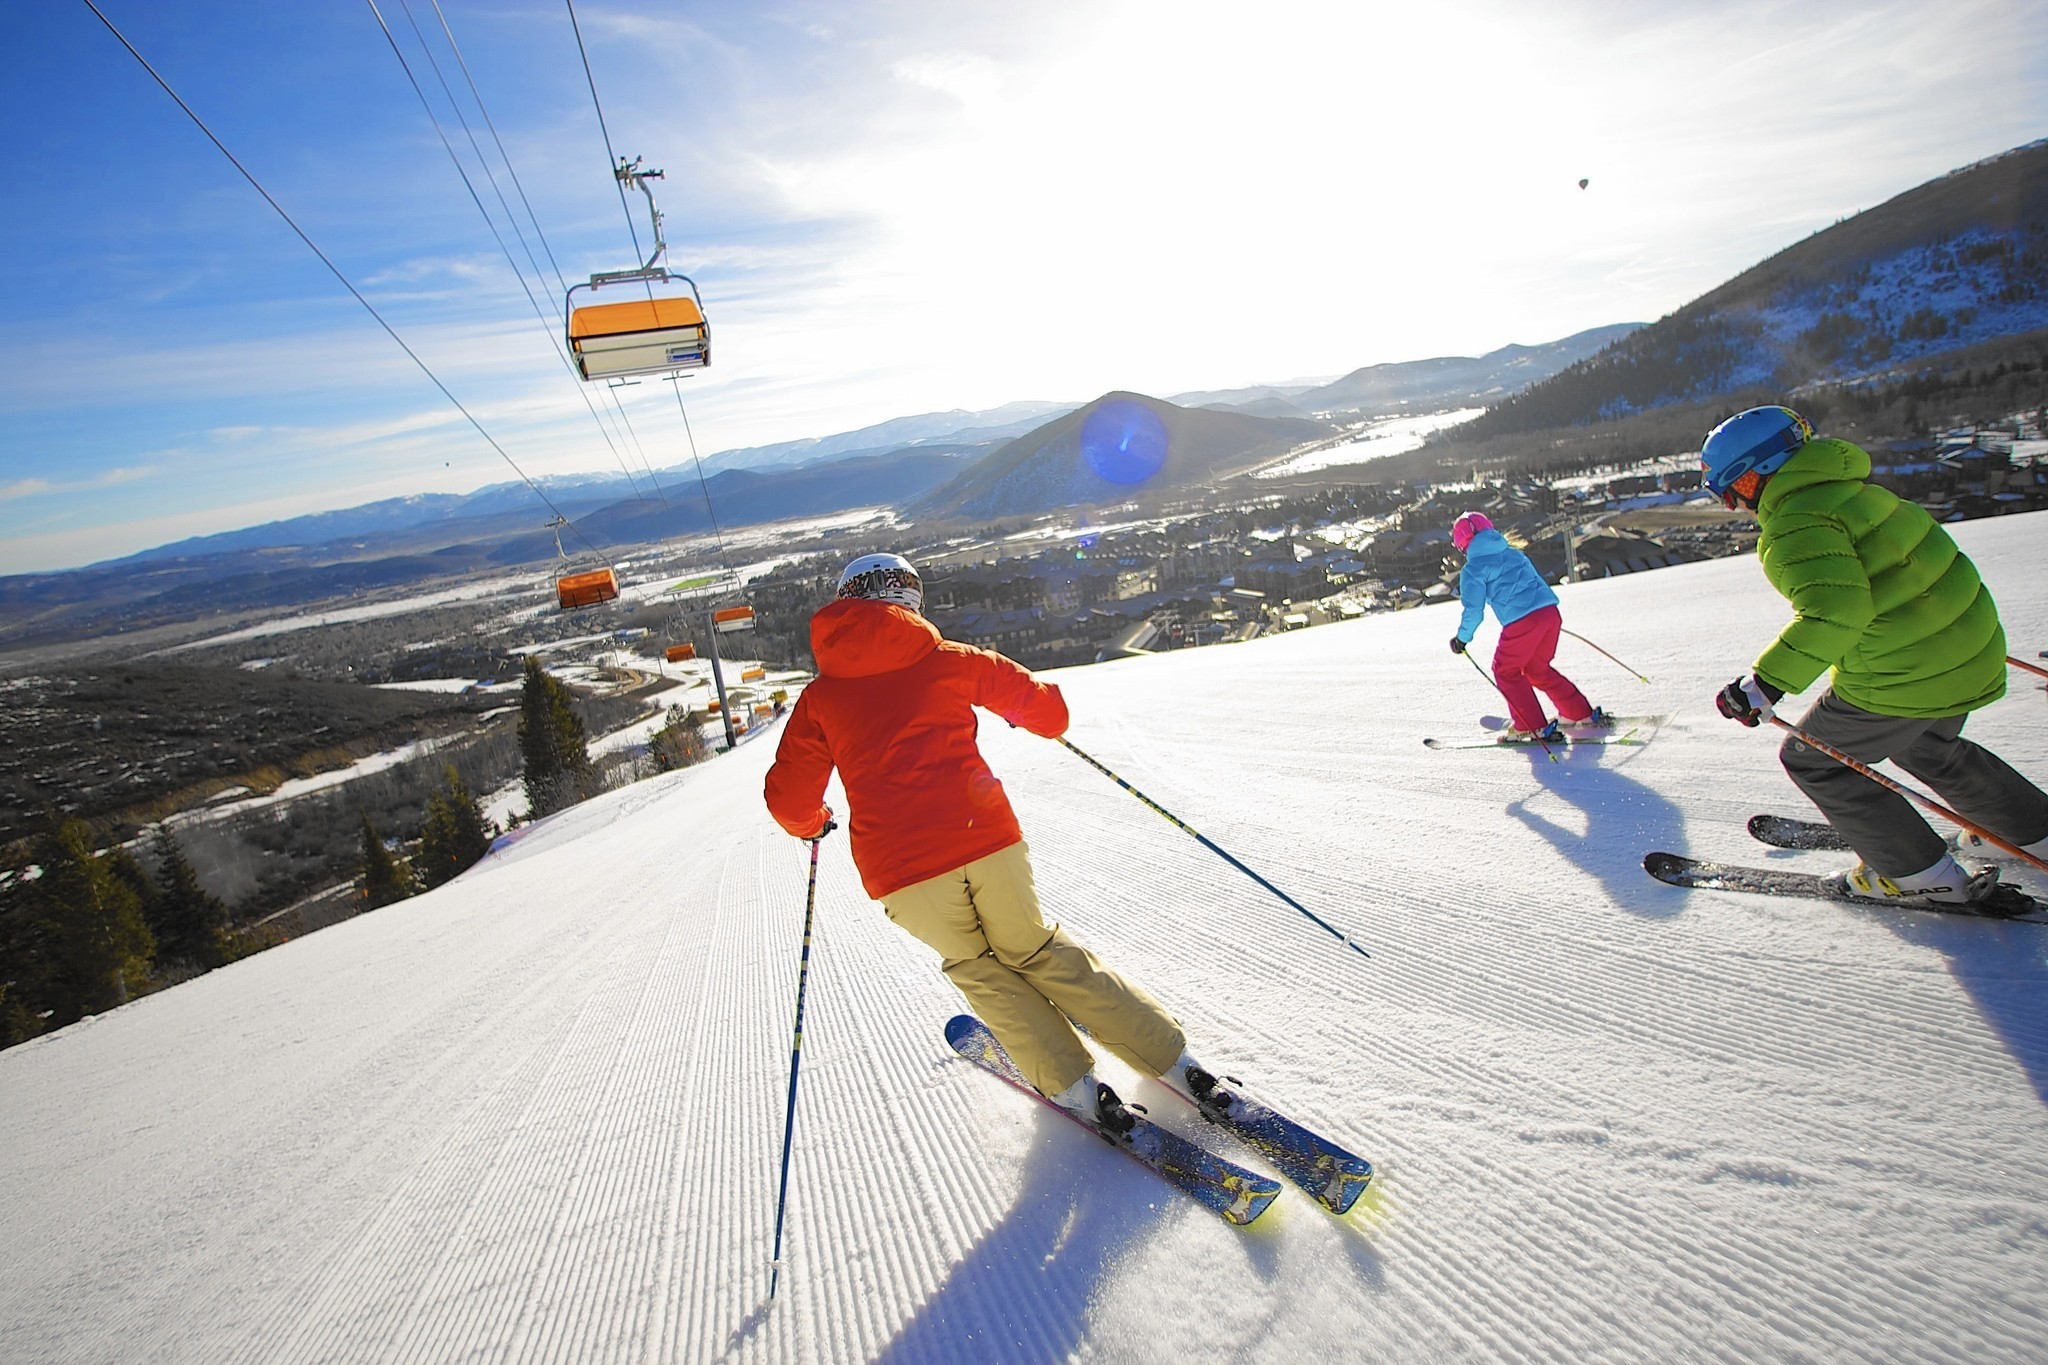 Park City's Canyons ski resort is well on its way to the big time